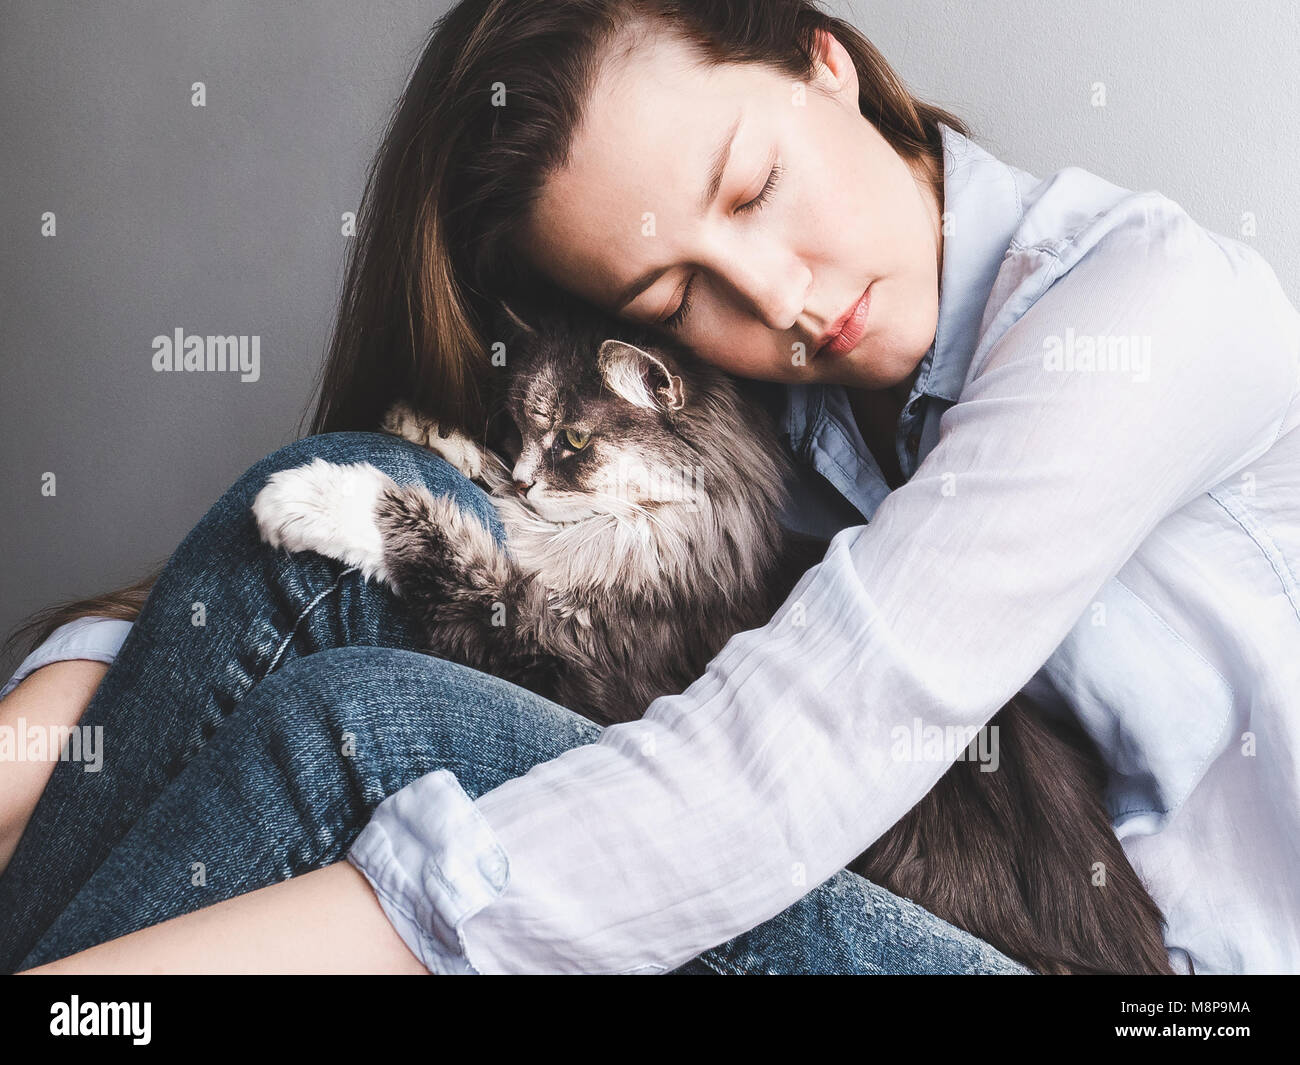 Stylish woman gently hugging kitten - Stock Image